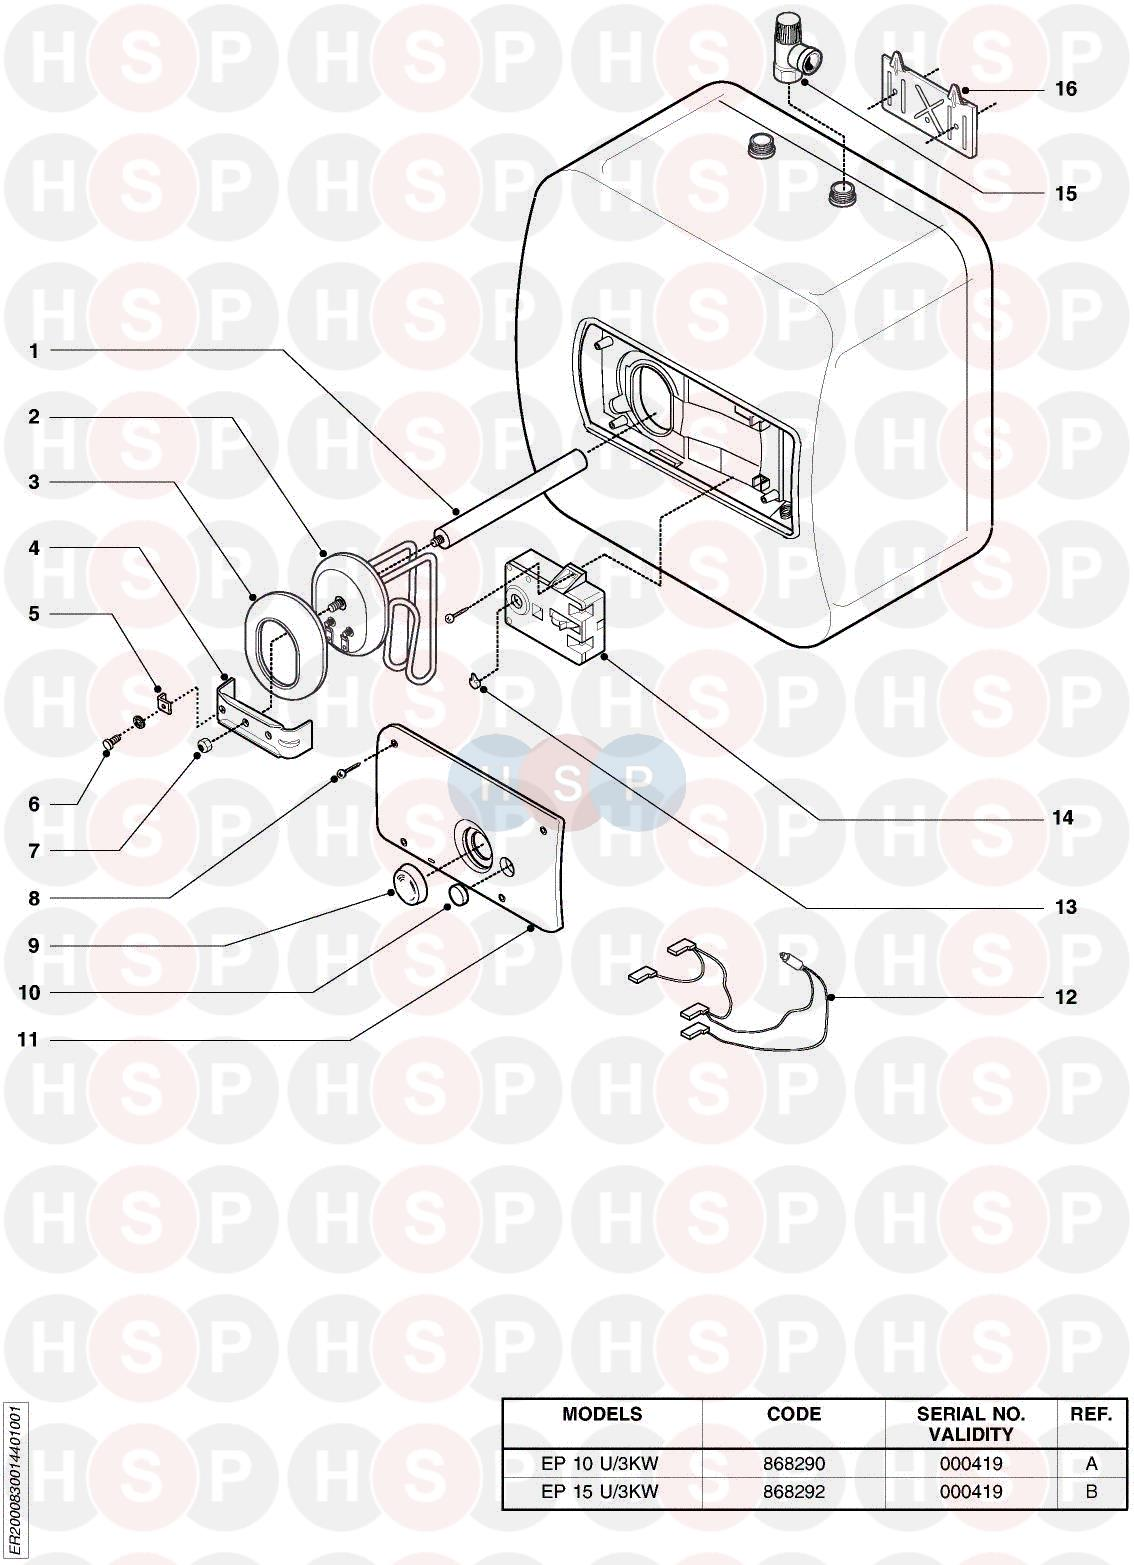 ariston ep 10 u3kw edition 1  exploded view  diagram